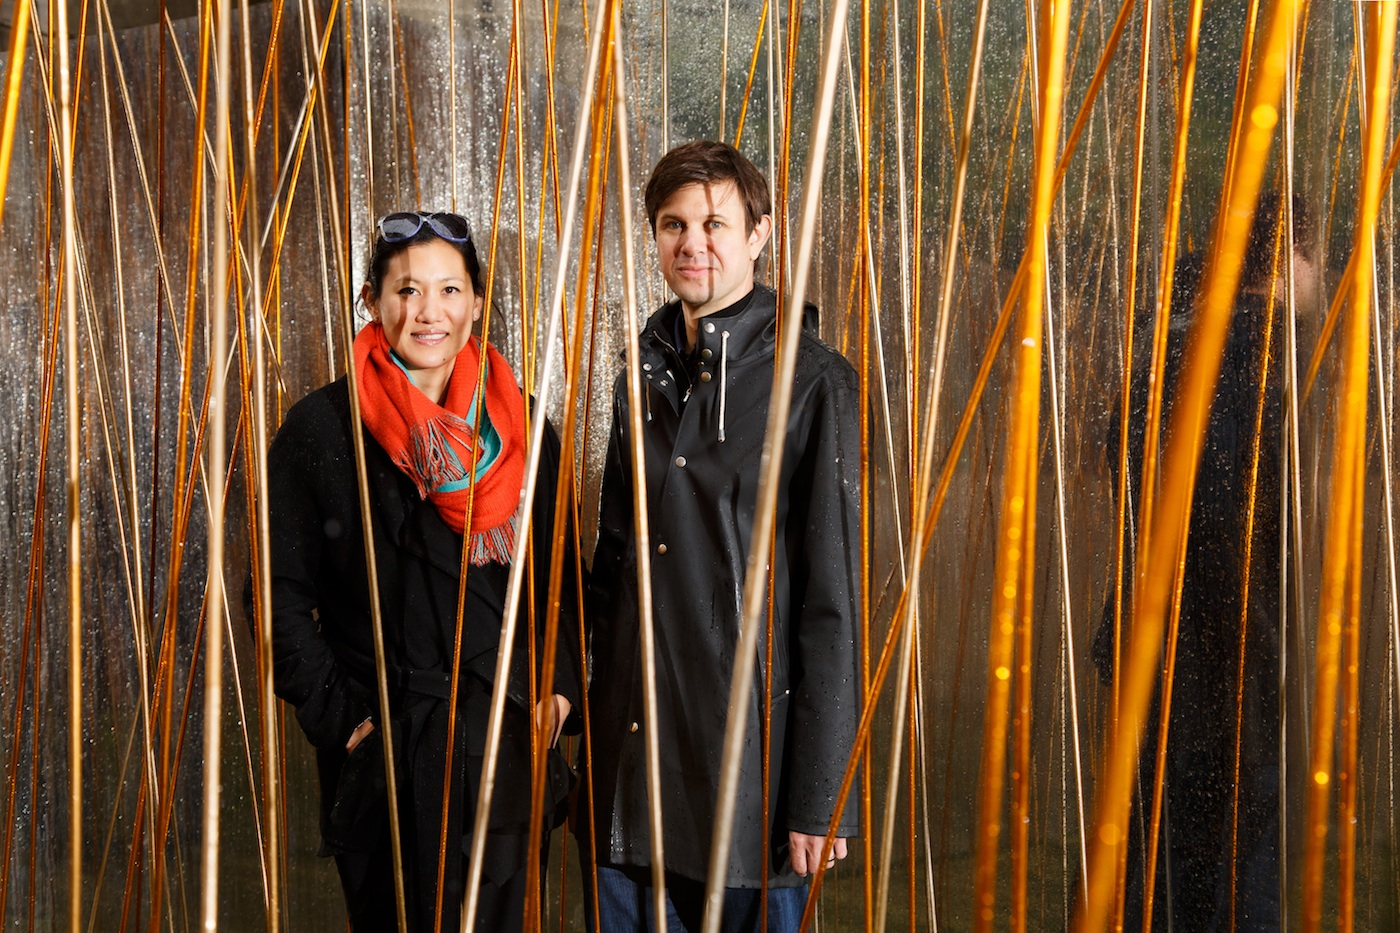 Marisa Yiu and Eric Shchuldenfrei in the industrial forest - Photograph of William Furniss